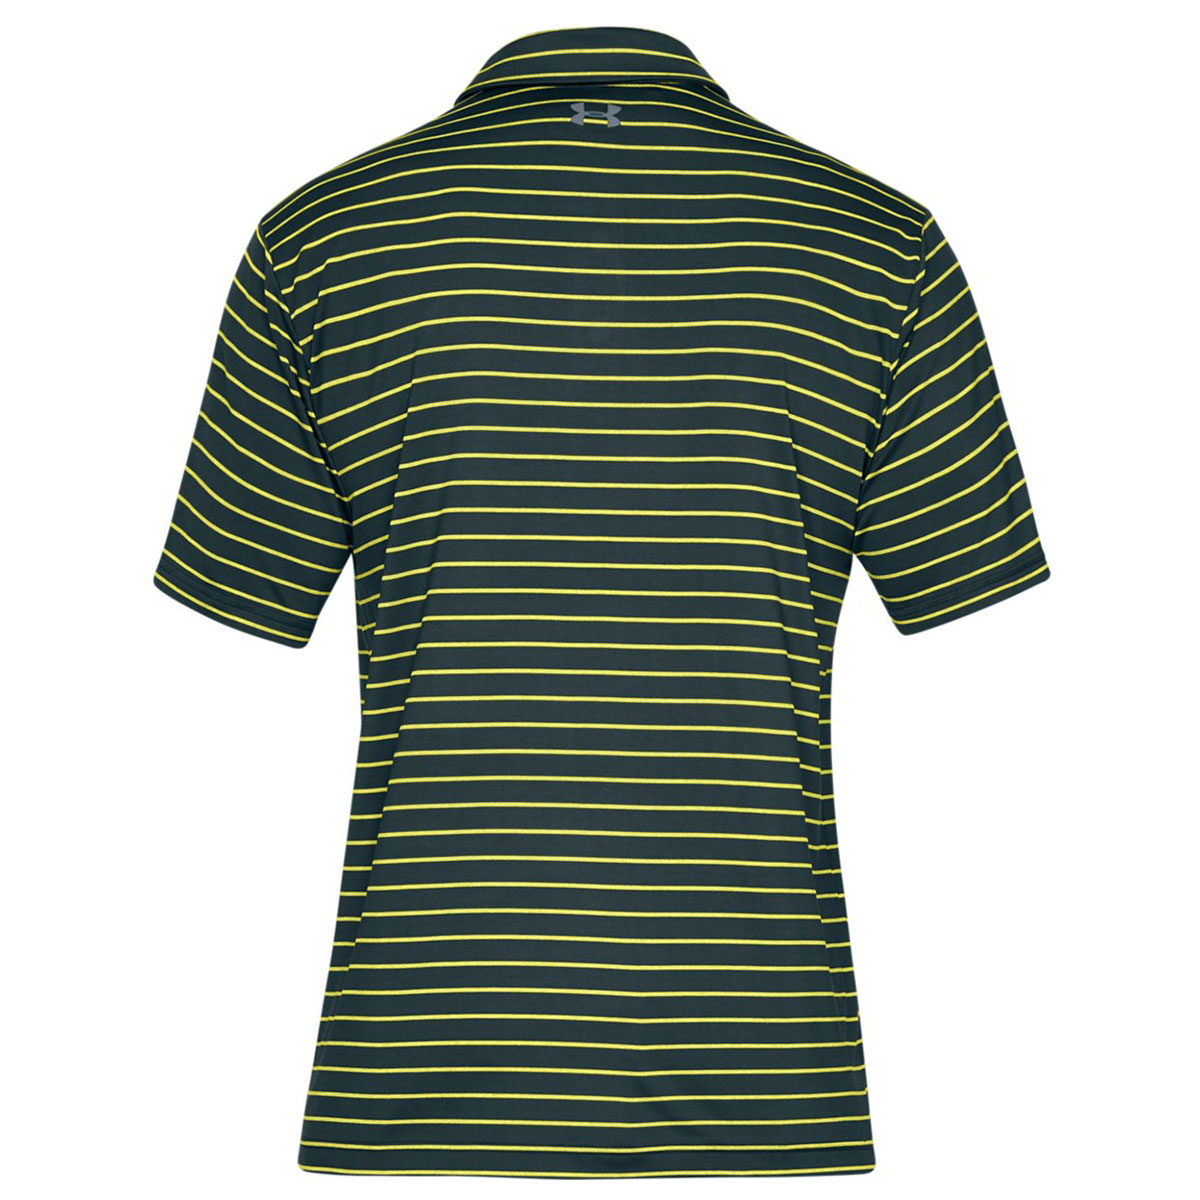 Under-Armour-Mens-2019-Playoff-Polo-2-0-Breathable-Light-Stretch-Polo-Shirt thumbnail 37